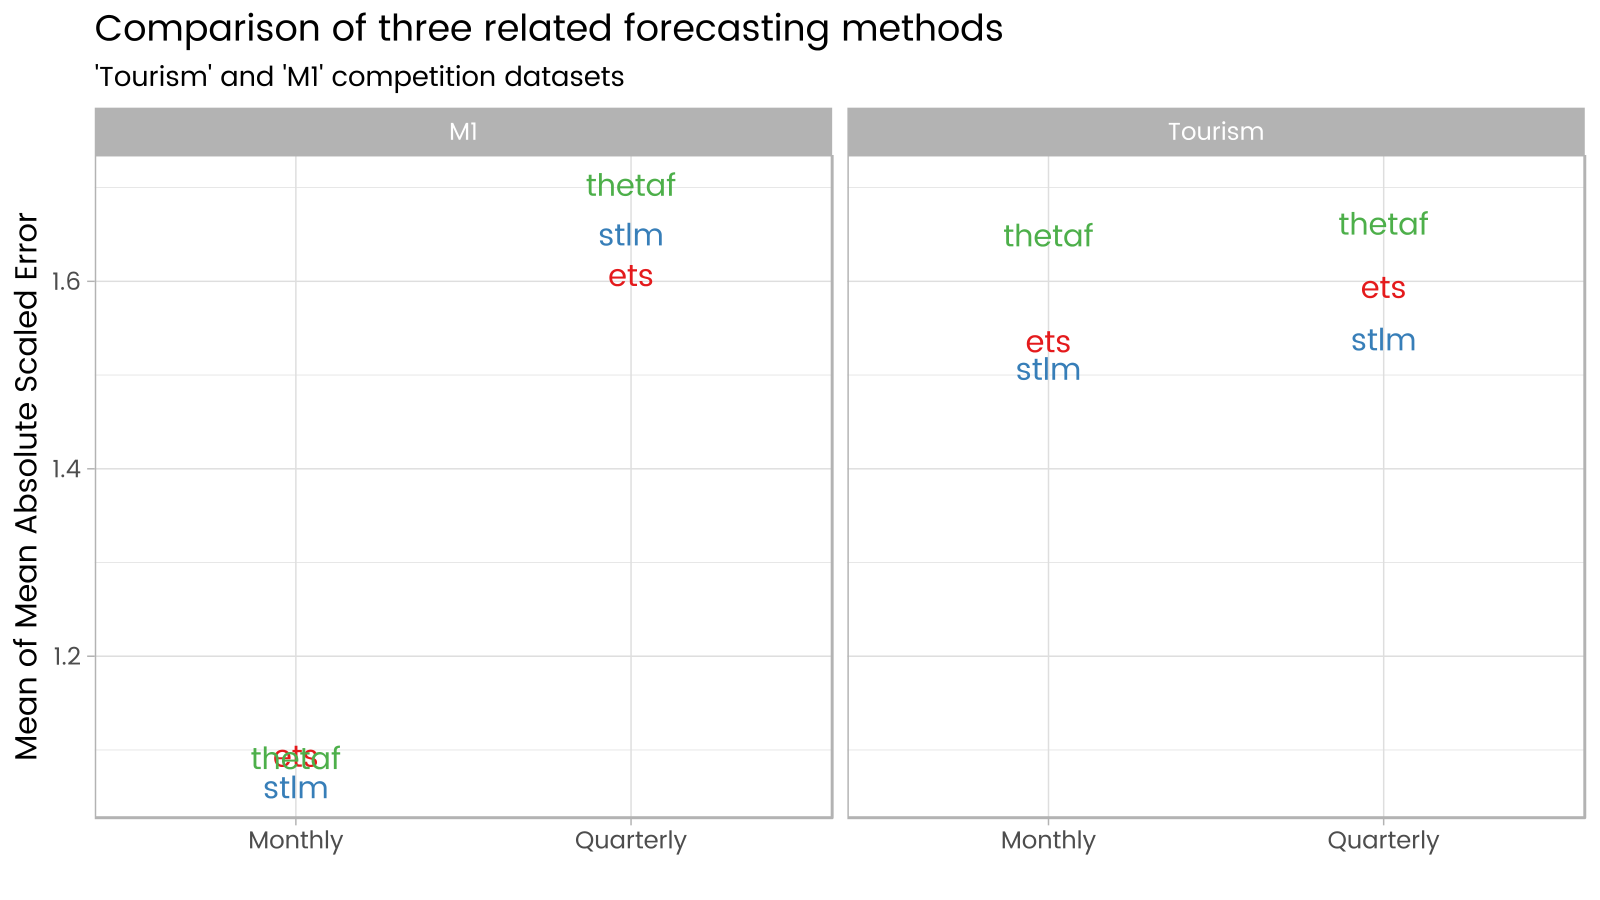 Error, trend, seasonality - ets and its forecast model friends